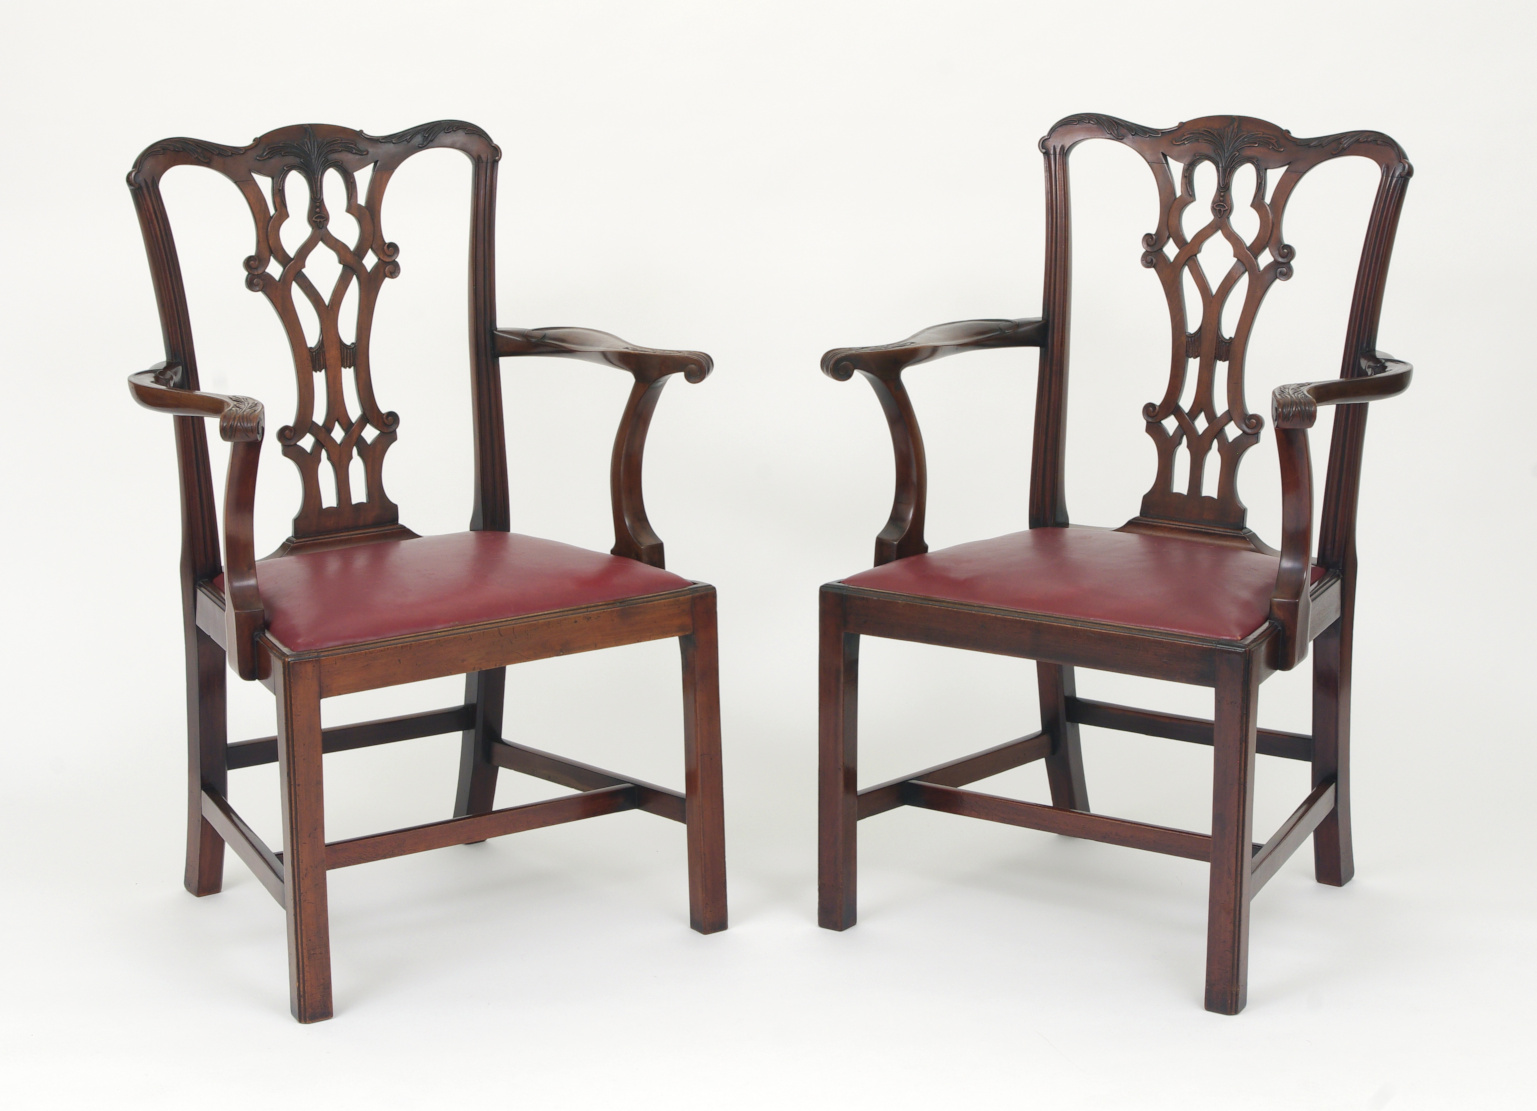 View 8: Set of Eight Chippendale Style Mahogany Dining Chairs (6+2), early 19th c.